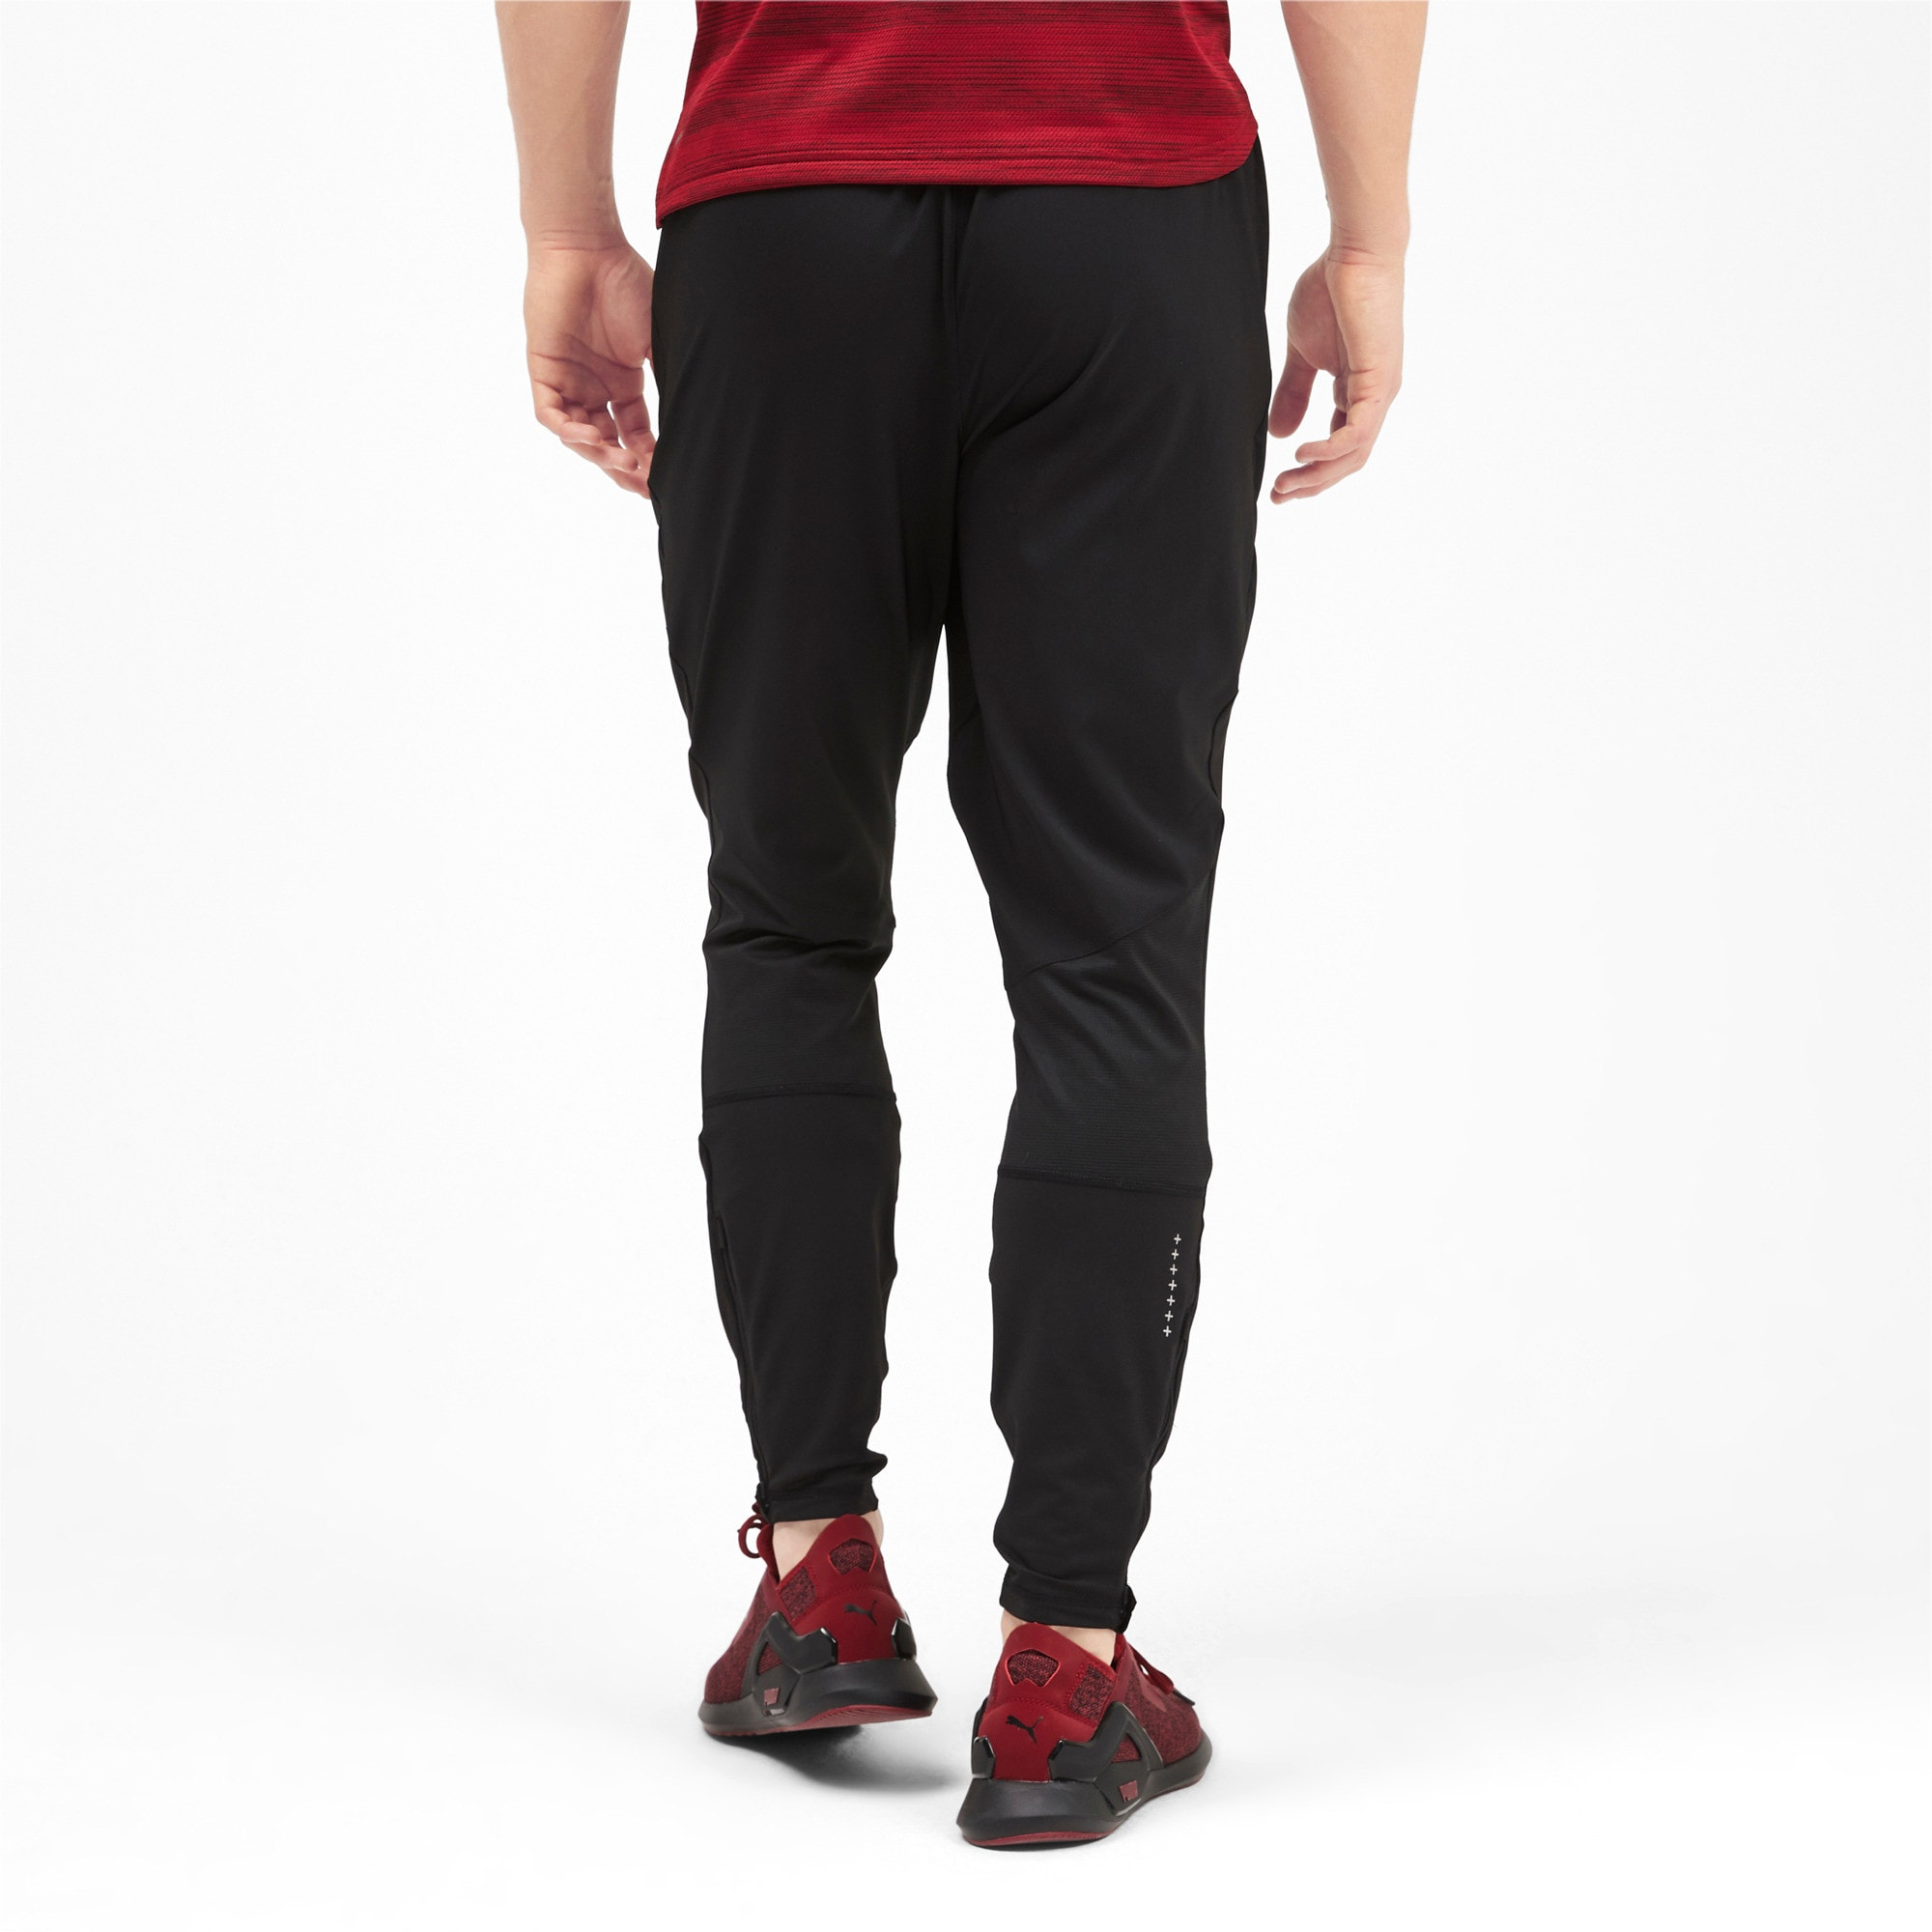 Thumbnail 2 of Get Fast Excite Men's Sweatpants, Puma Black, medium